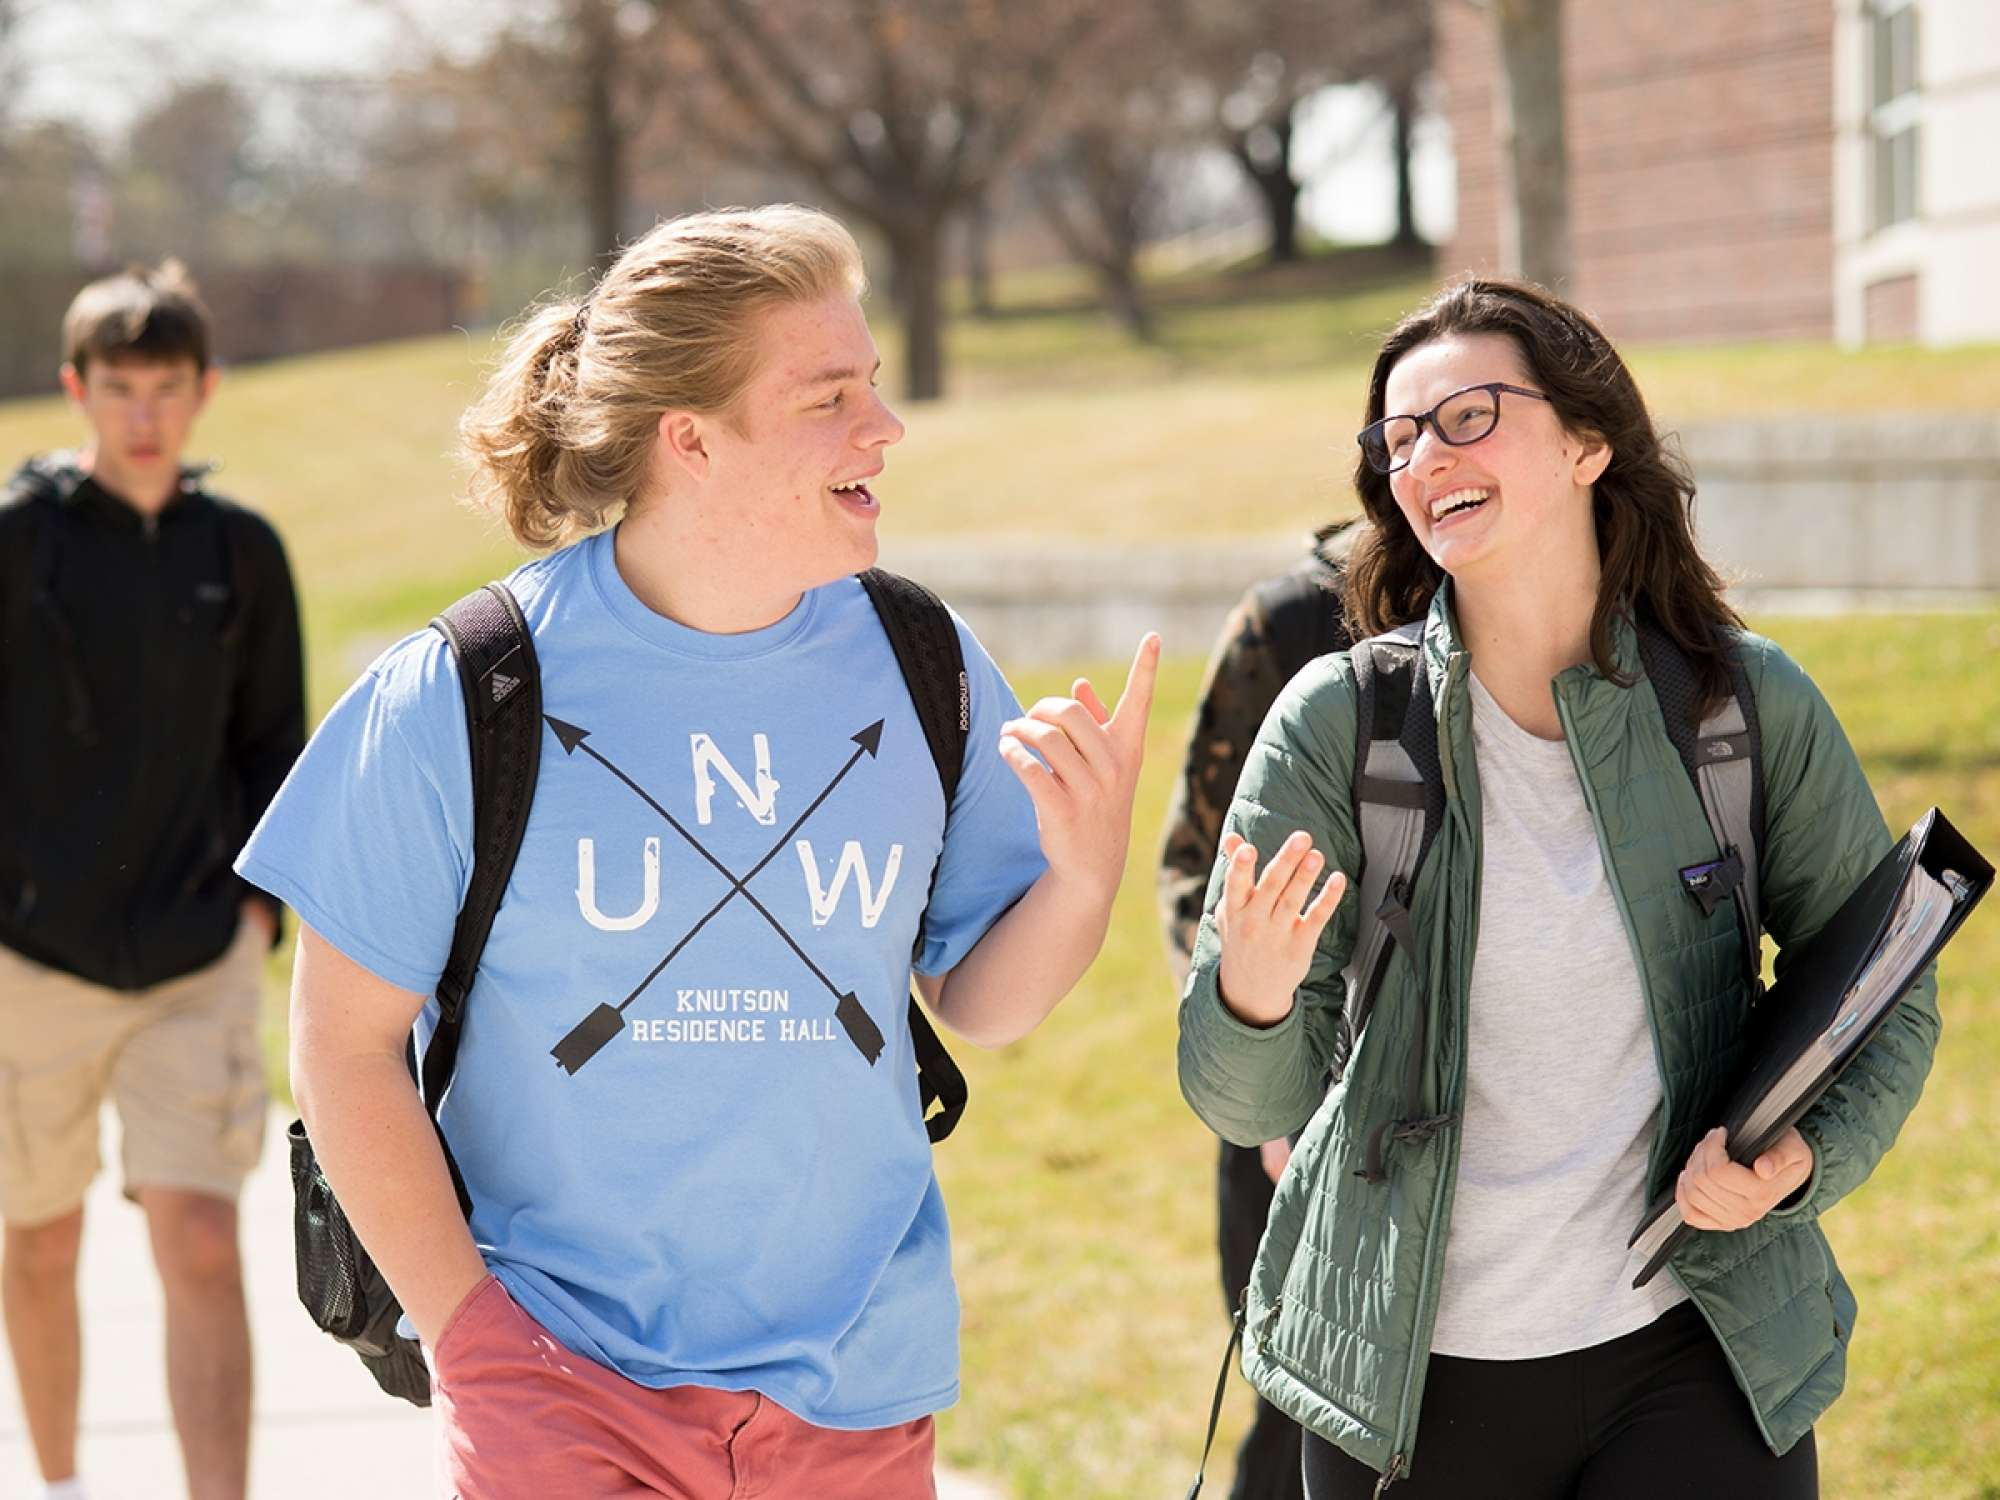 Two students walking together and laughing